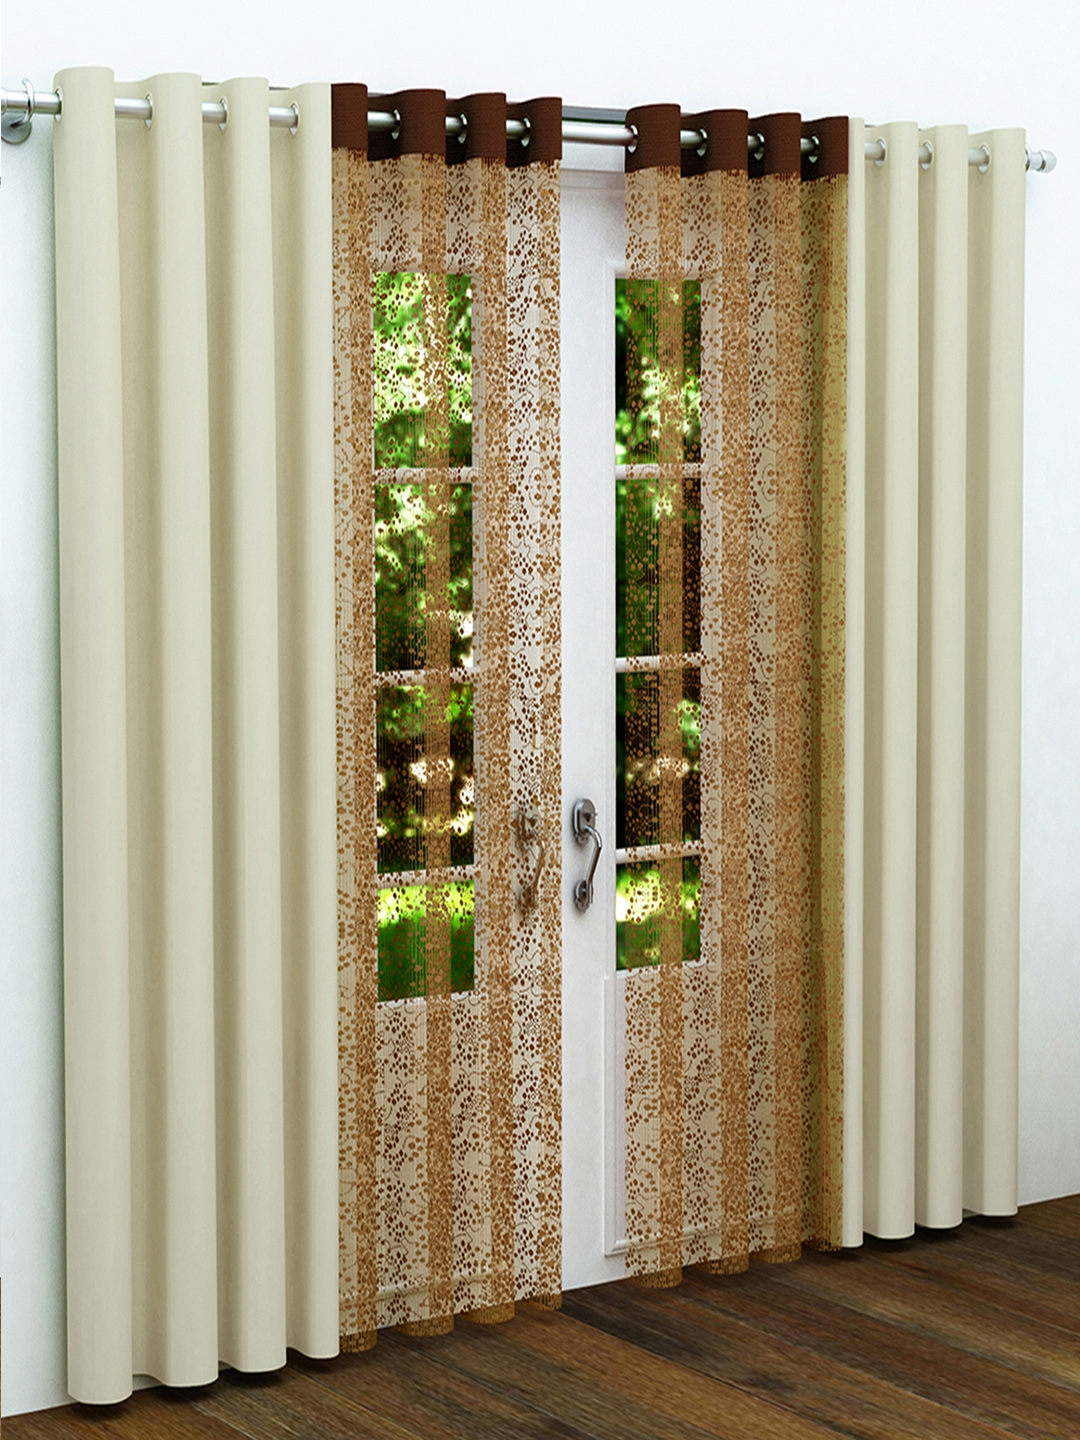 Story@home Off White U0026 Brown Set Of 4 Door Curtains